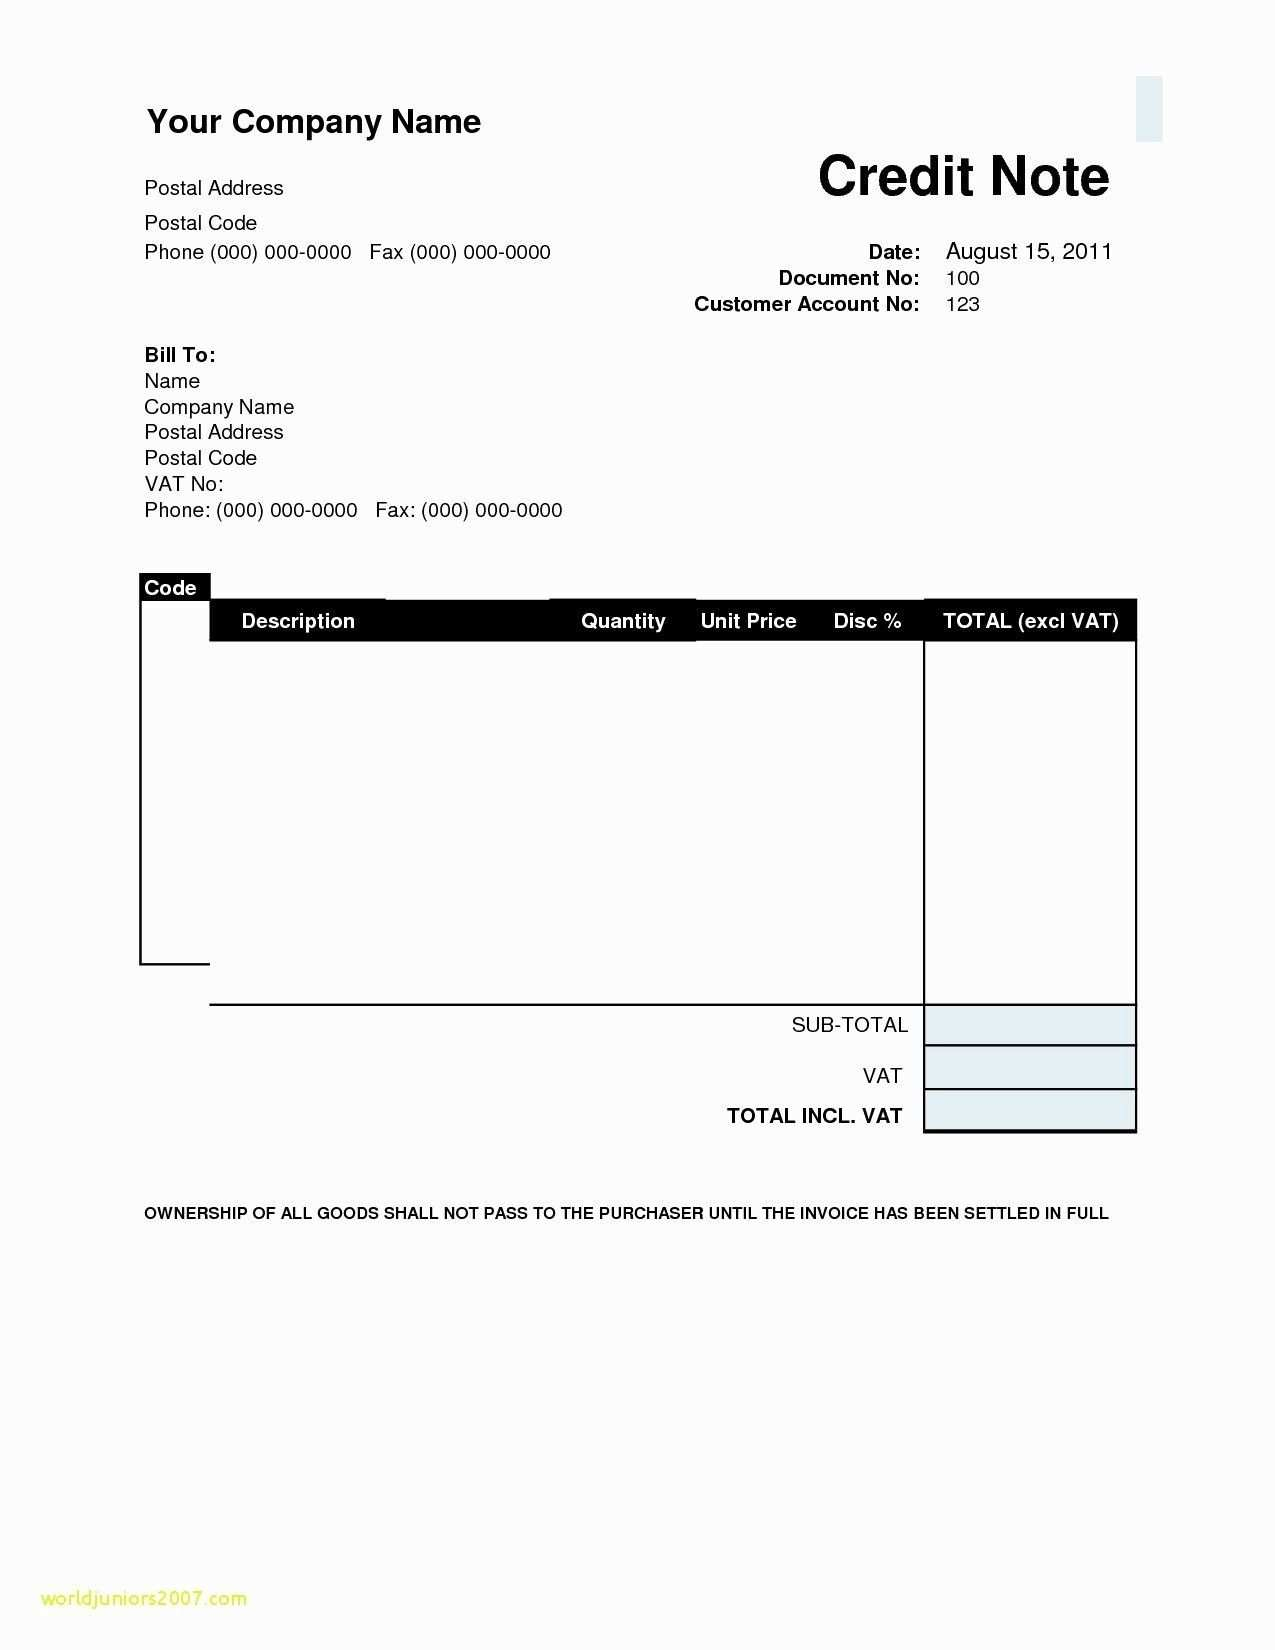 Free Resume Templates - √ Home Business Invoice software Fresh ¢‹†…¡ Dictionary Template 0d